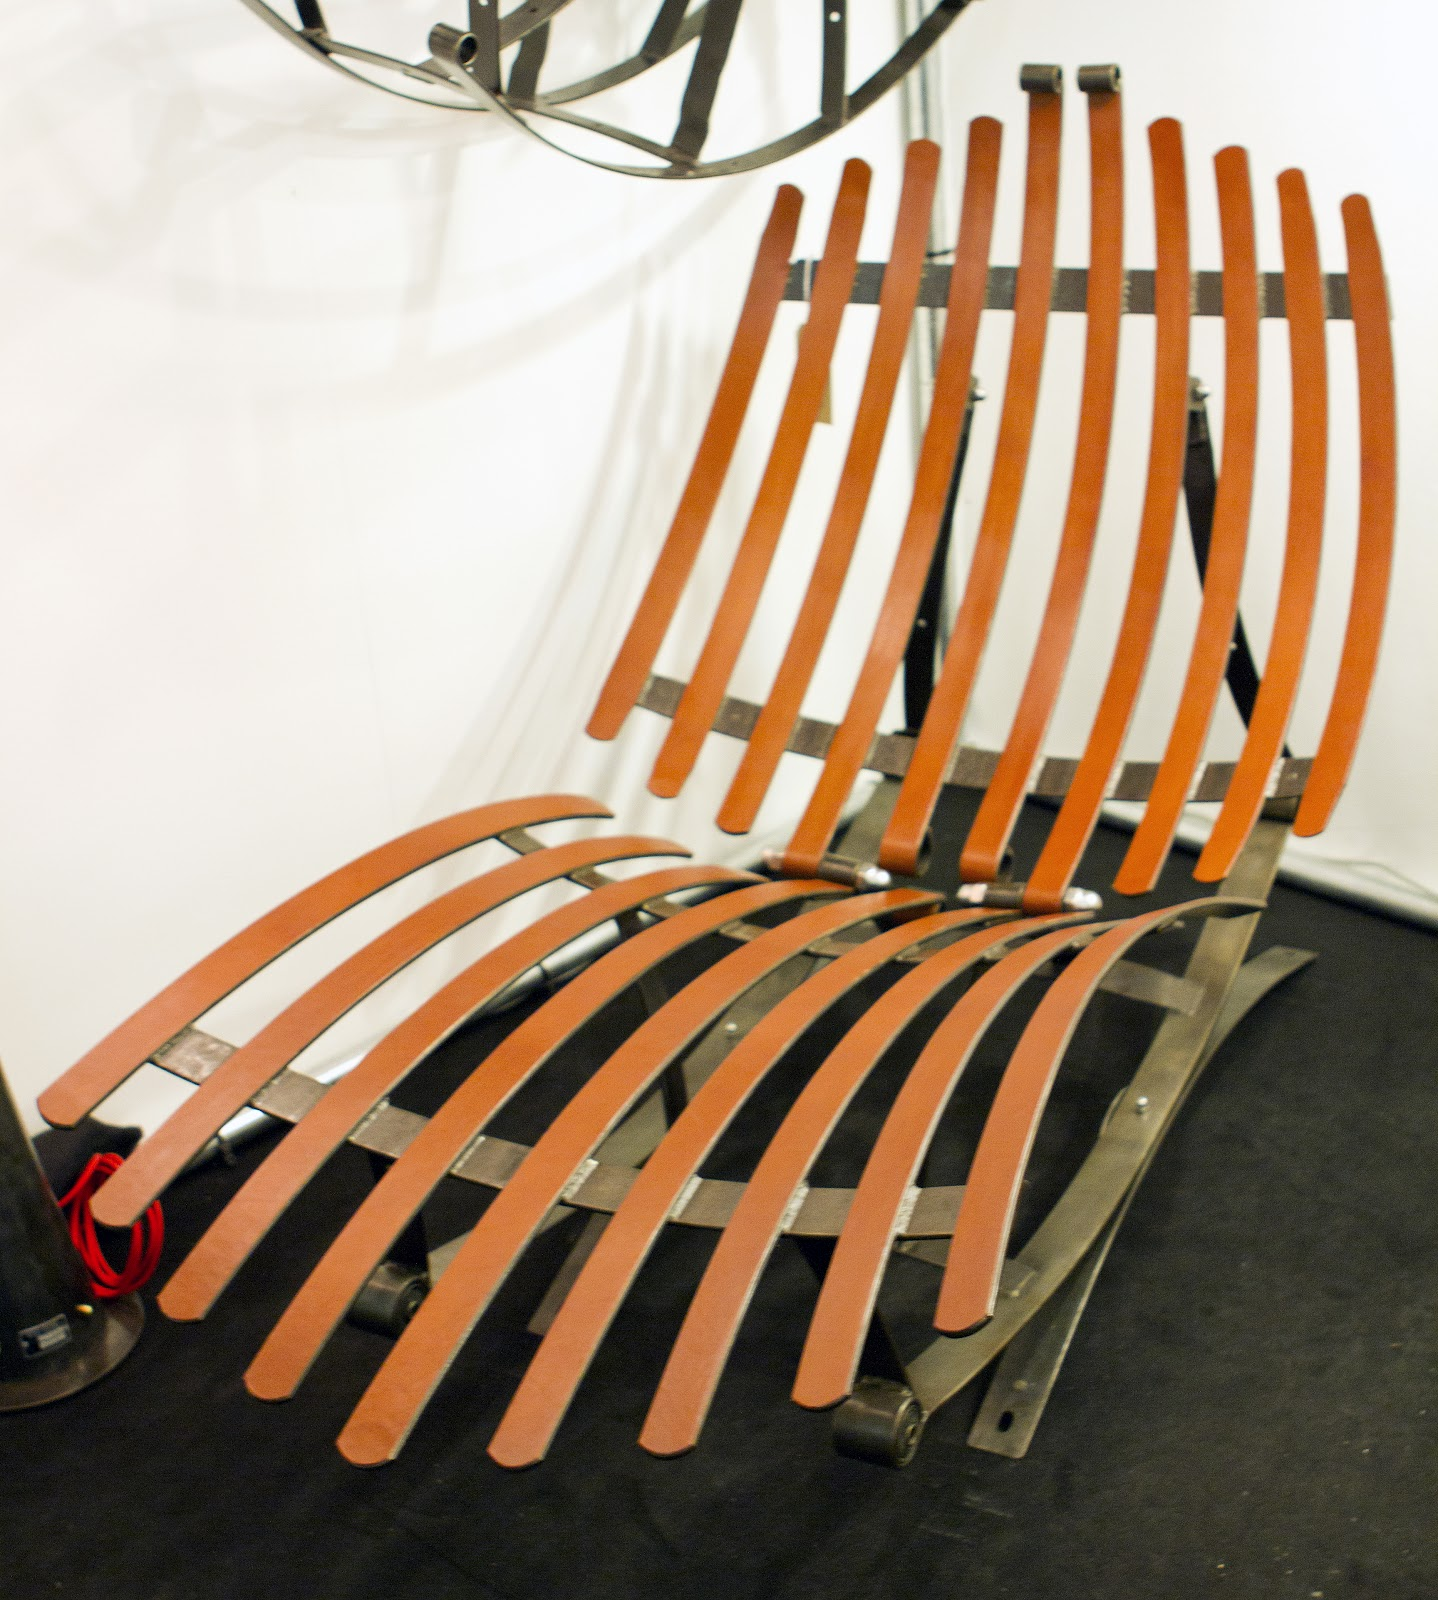 springs for chairs pool chair accessories the rag and bone man leaf spring